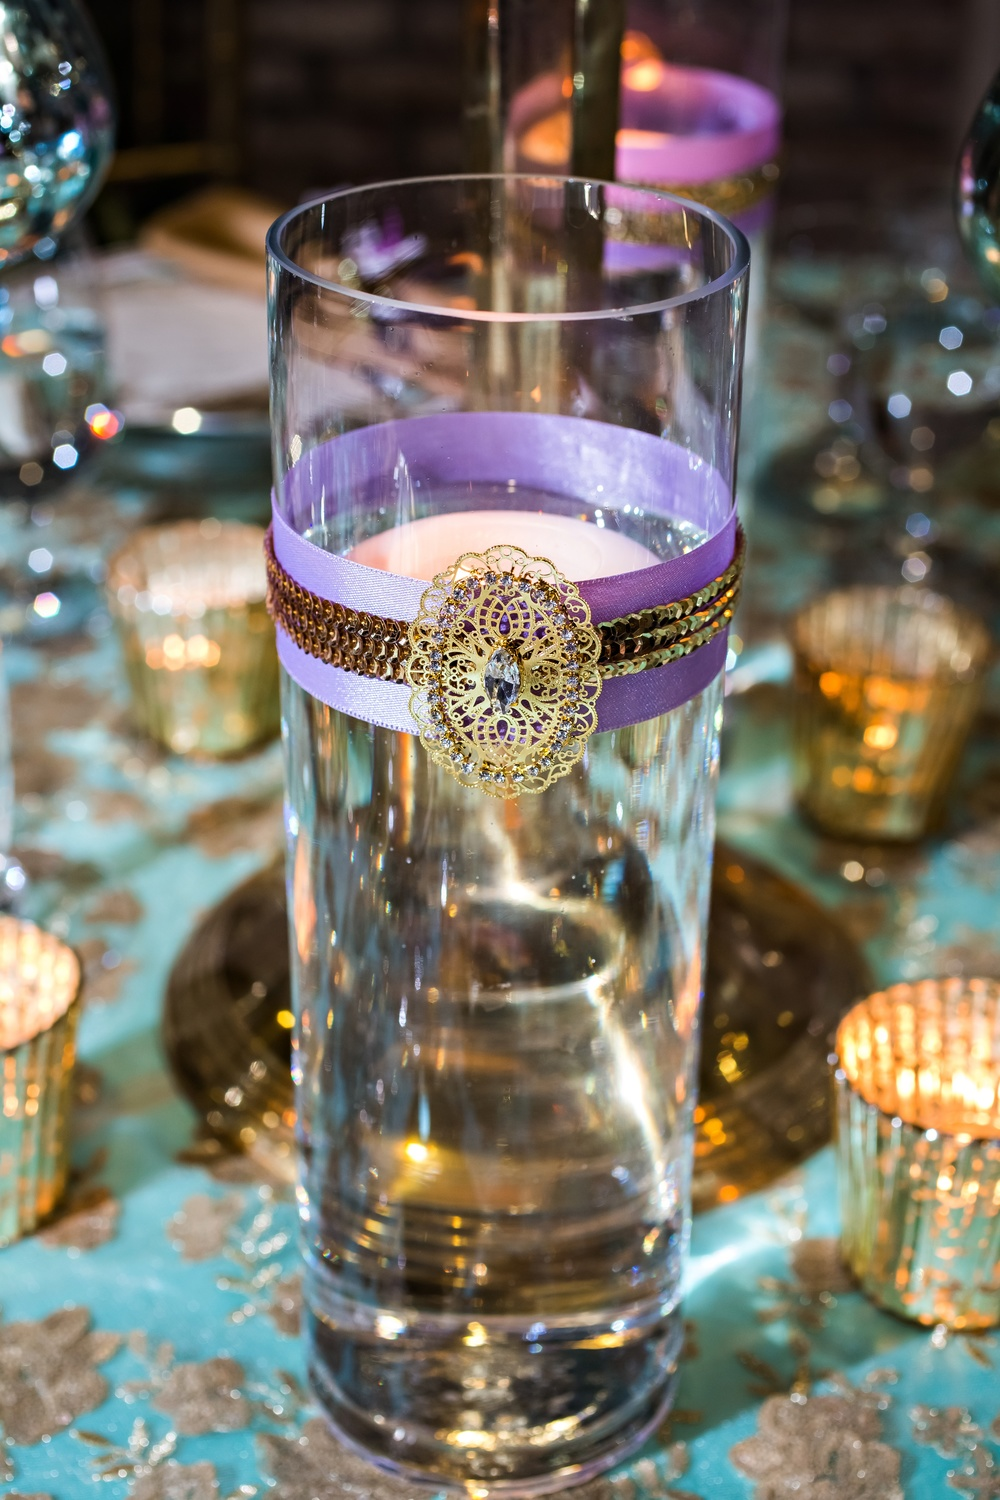 Candle holder          Stevie Ramos Photography for N.O.W. Magazine